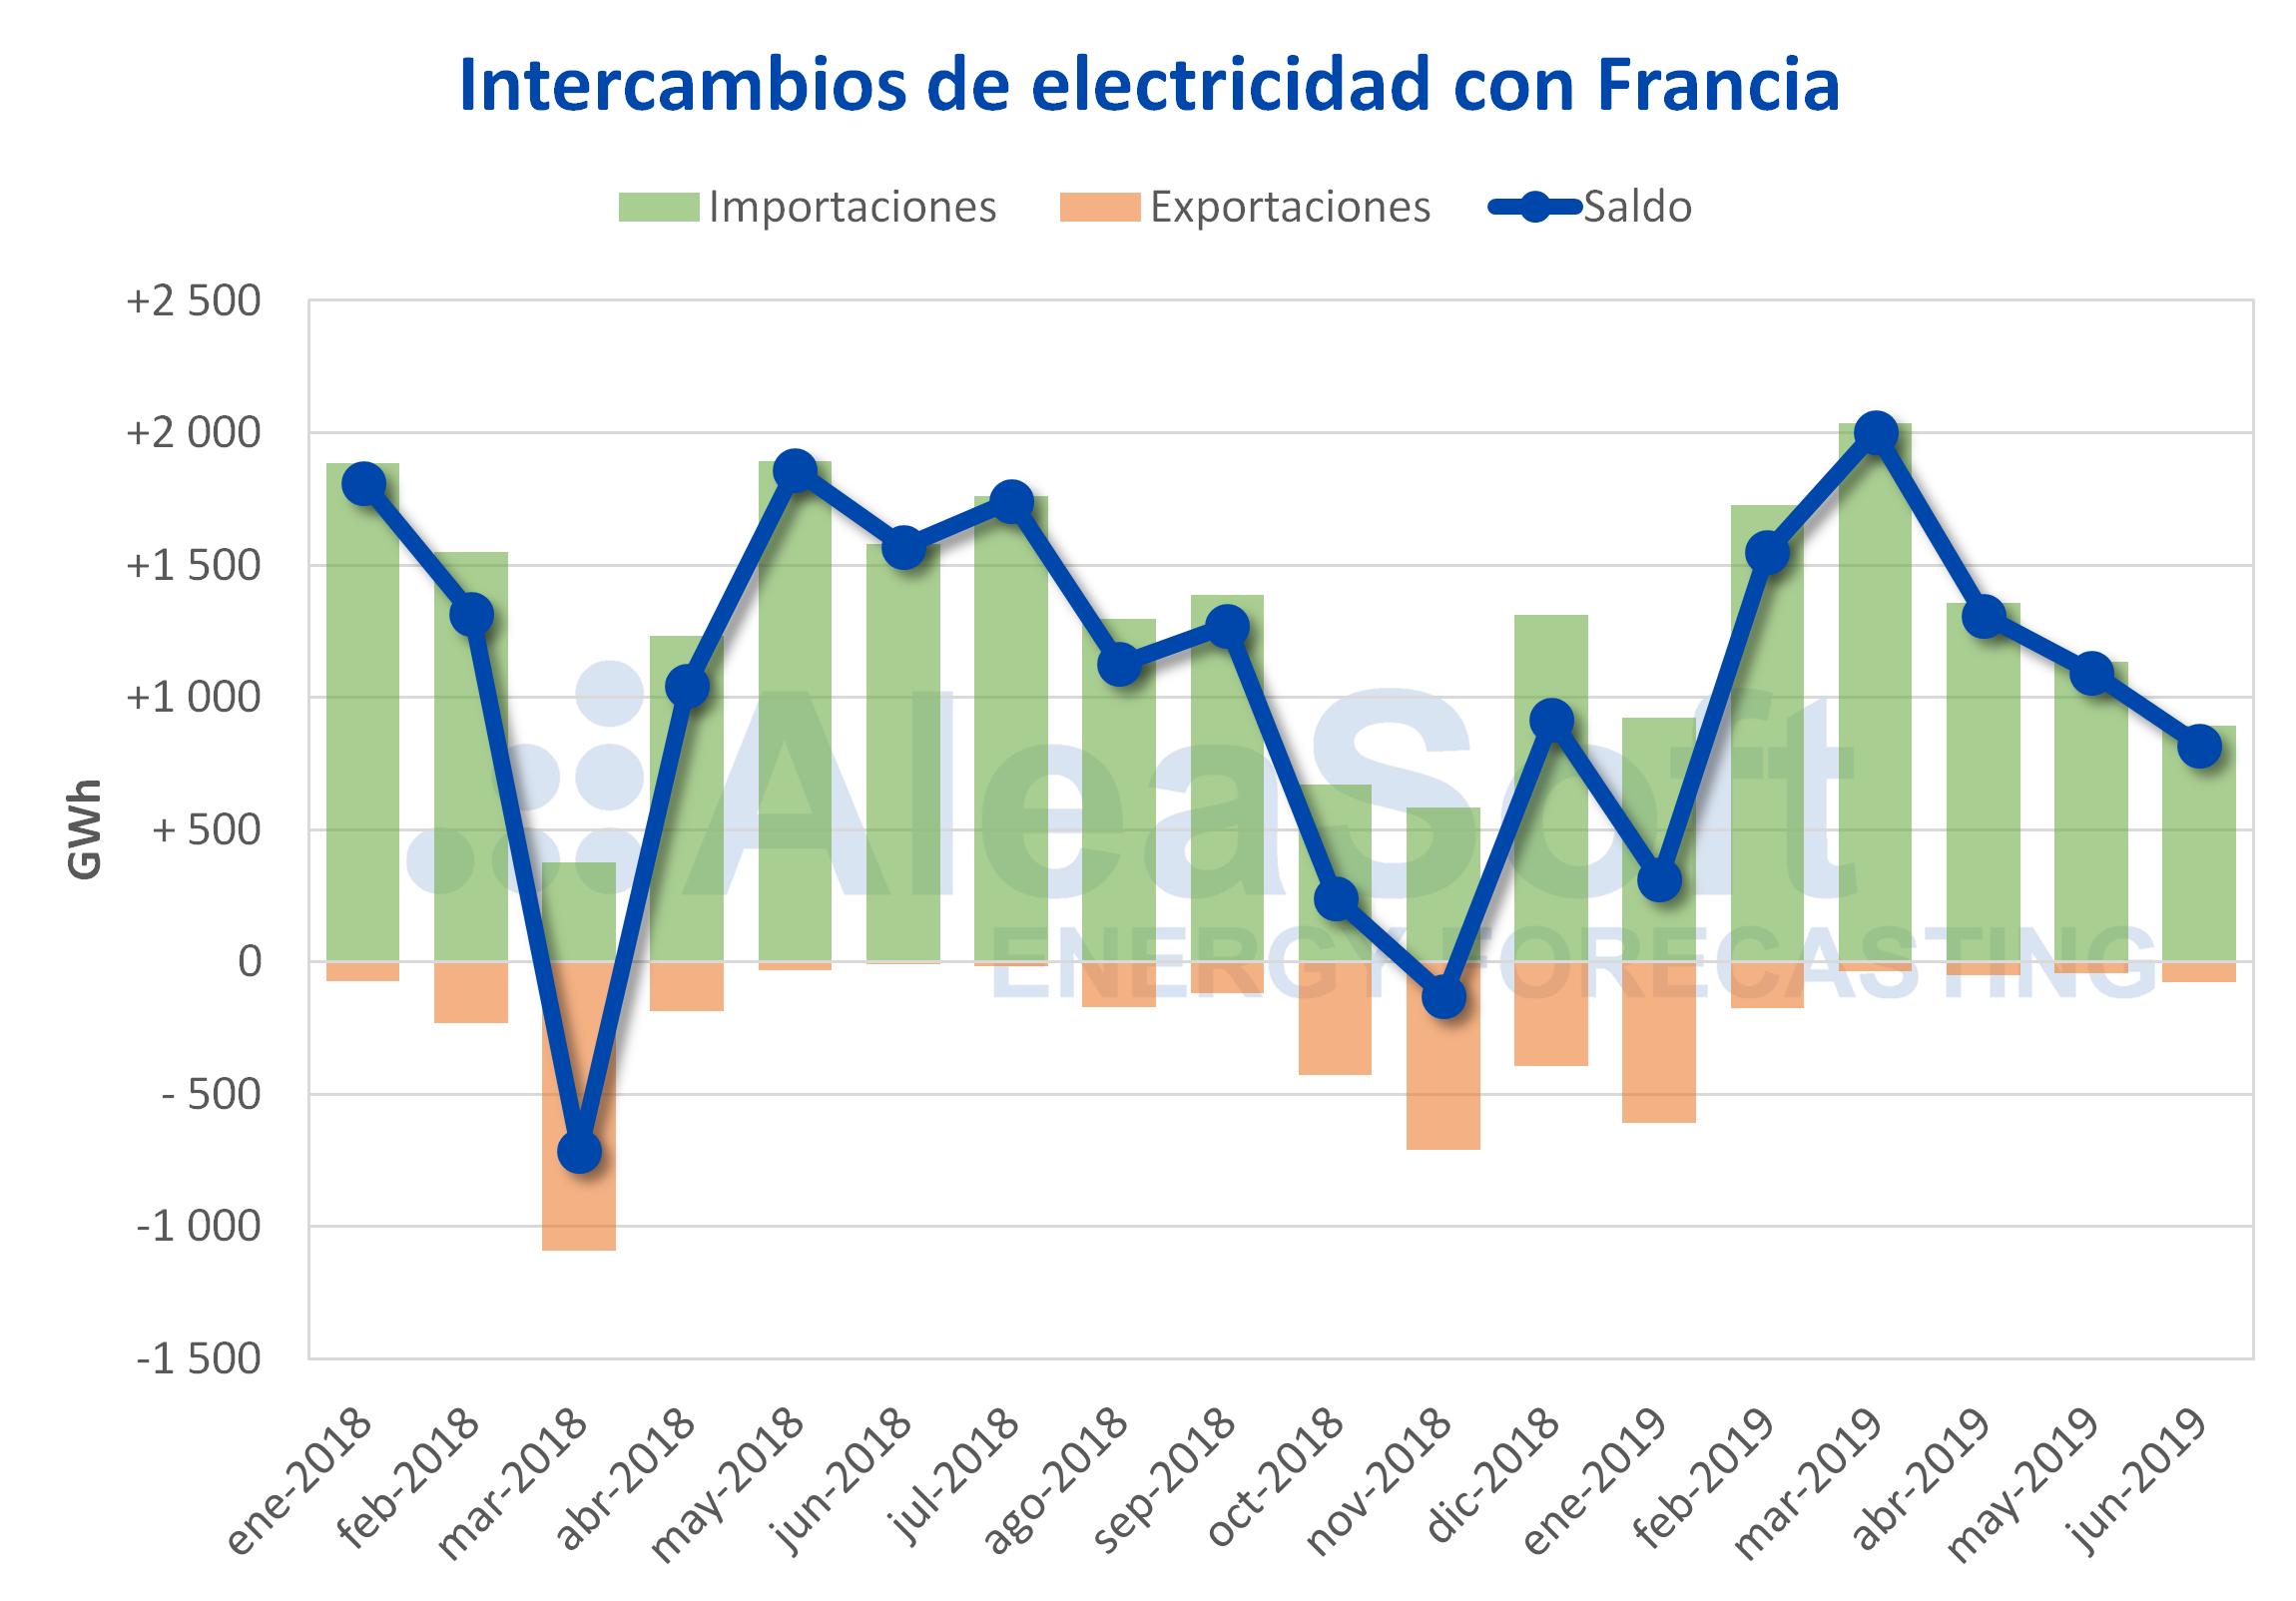 AleaSoft - Intercambios internacionales electricidad Francia